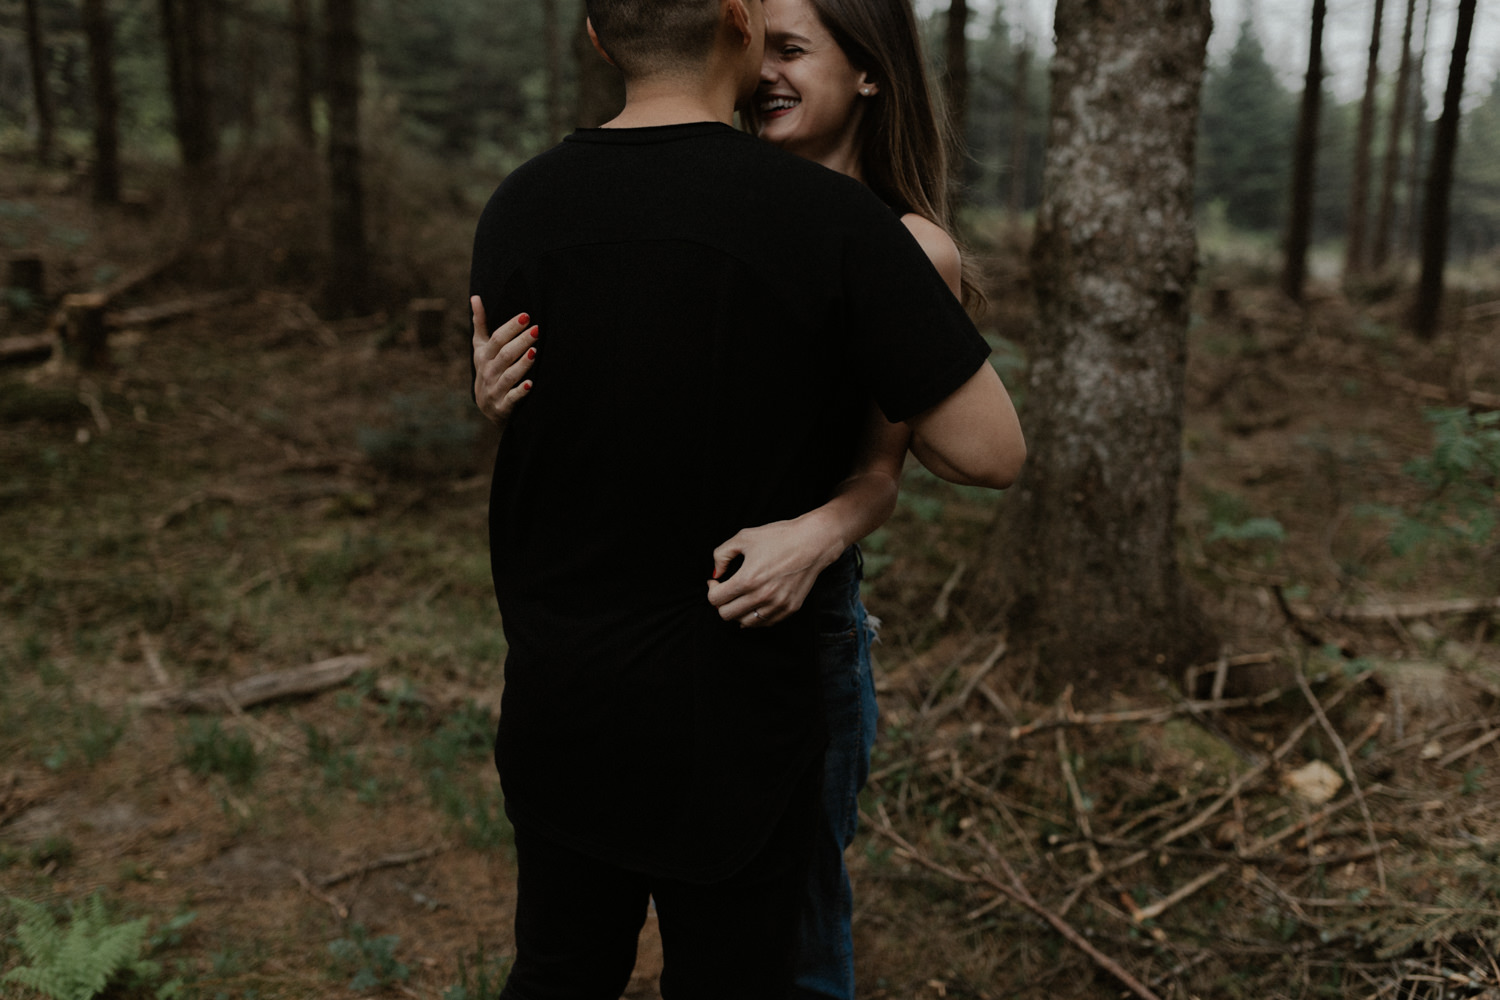 Ariane Marc-Antoine Engagement Iceland Wedding Mariage Quebec Nature Forest Foret Yanick Lesperance (1 of 73).jpg